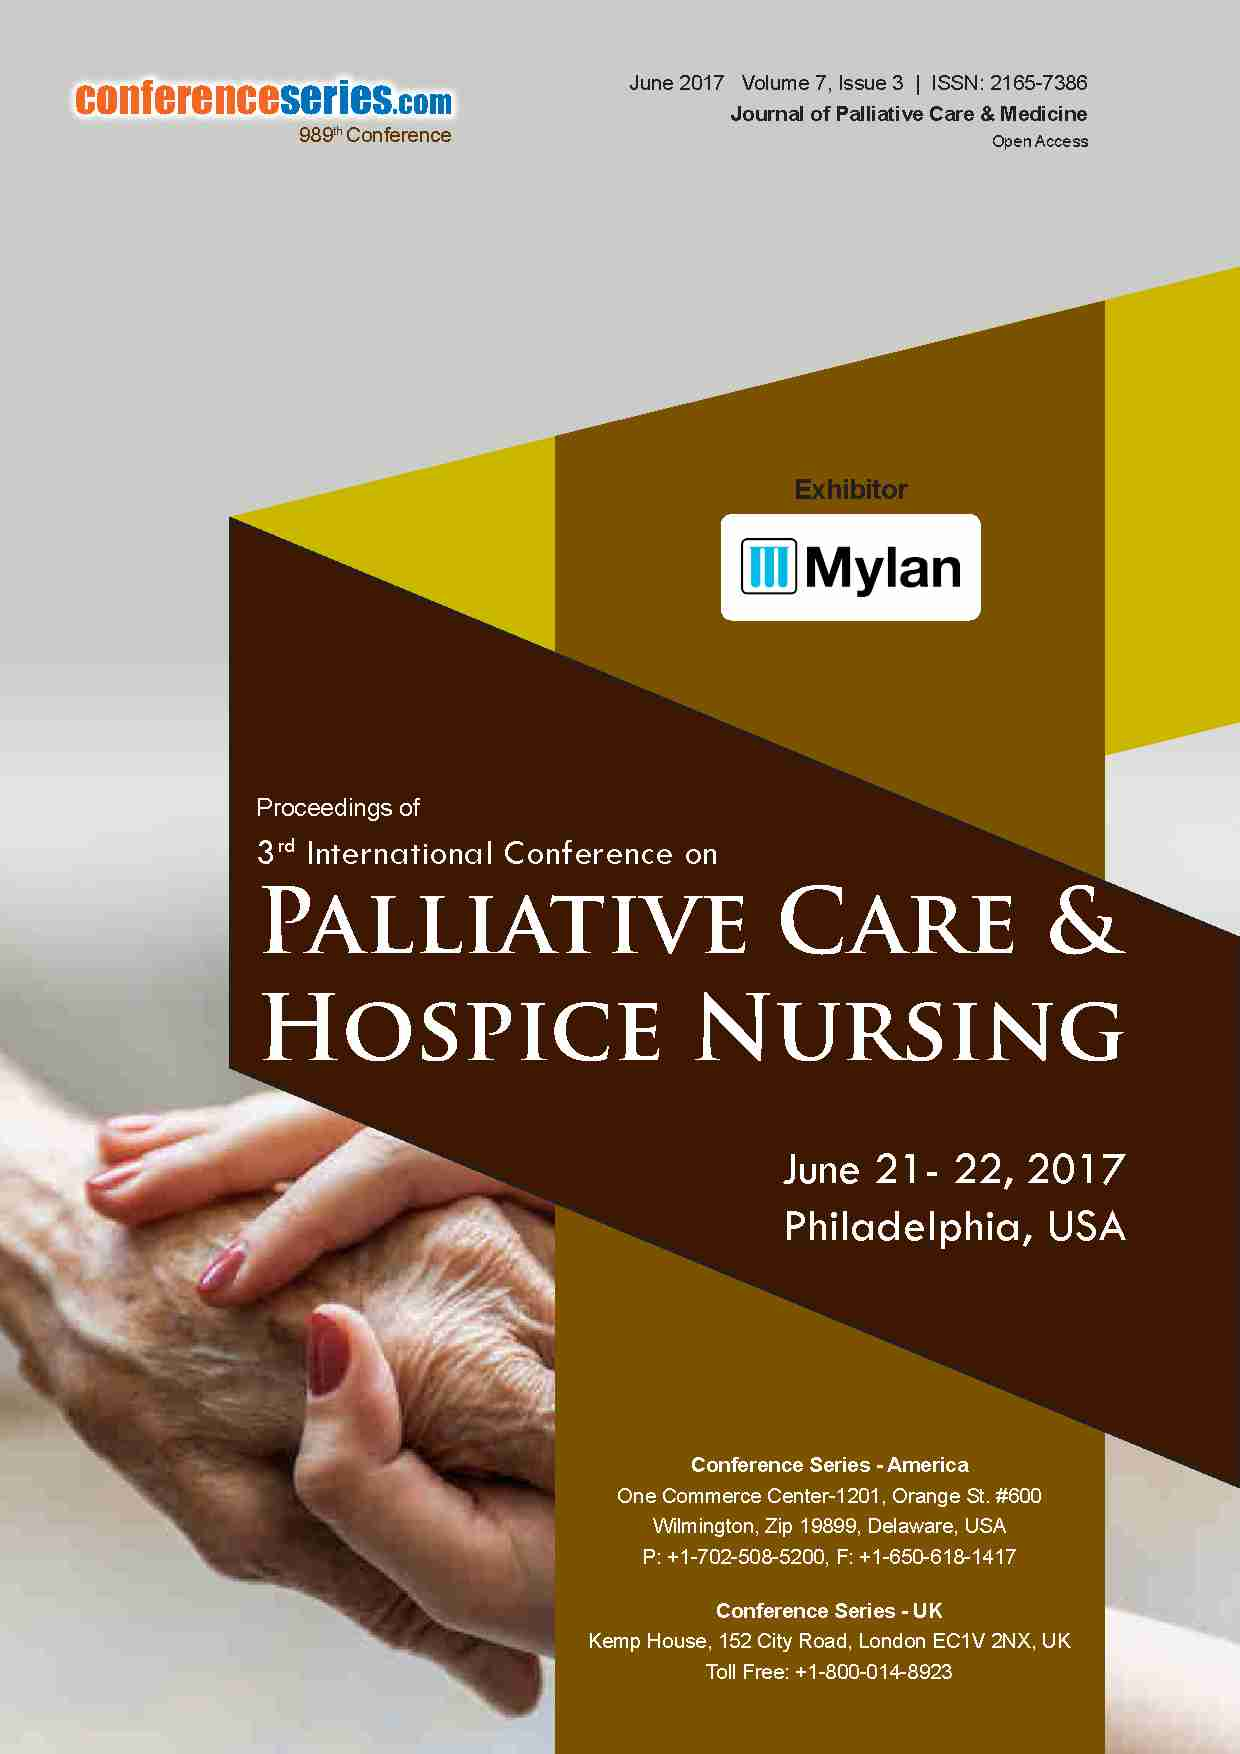 3rd International Conference on Palliative Care & Hospice Nursing